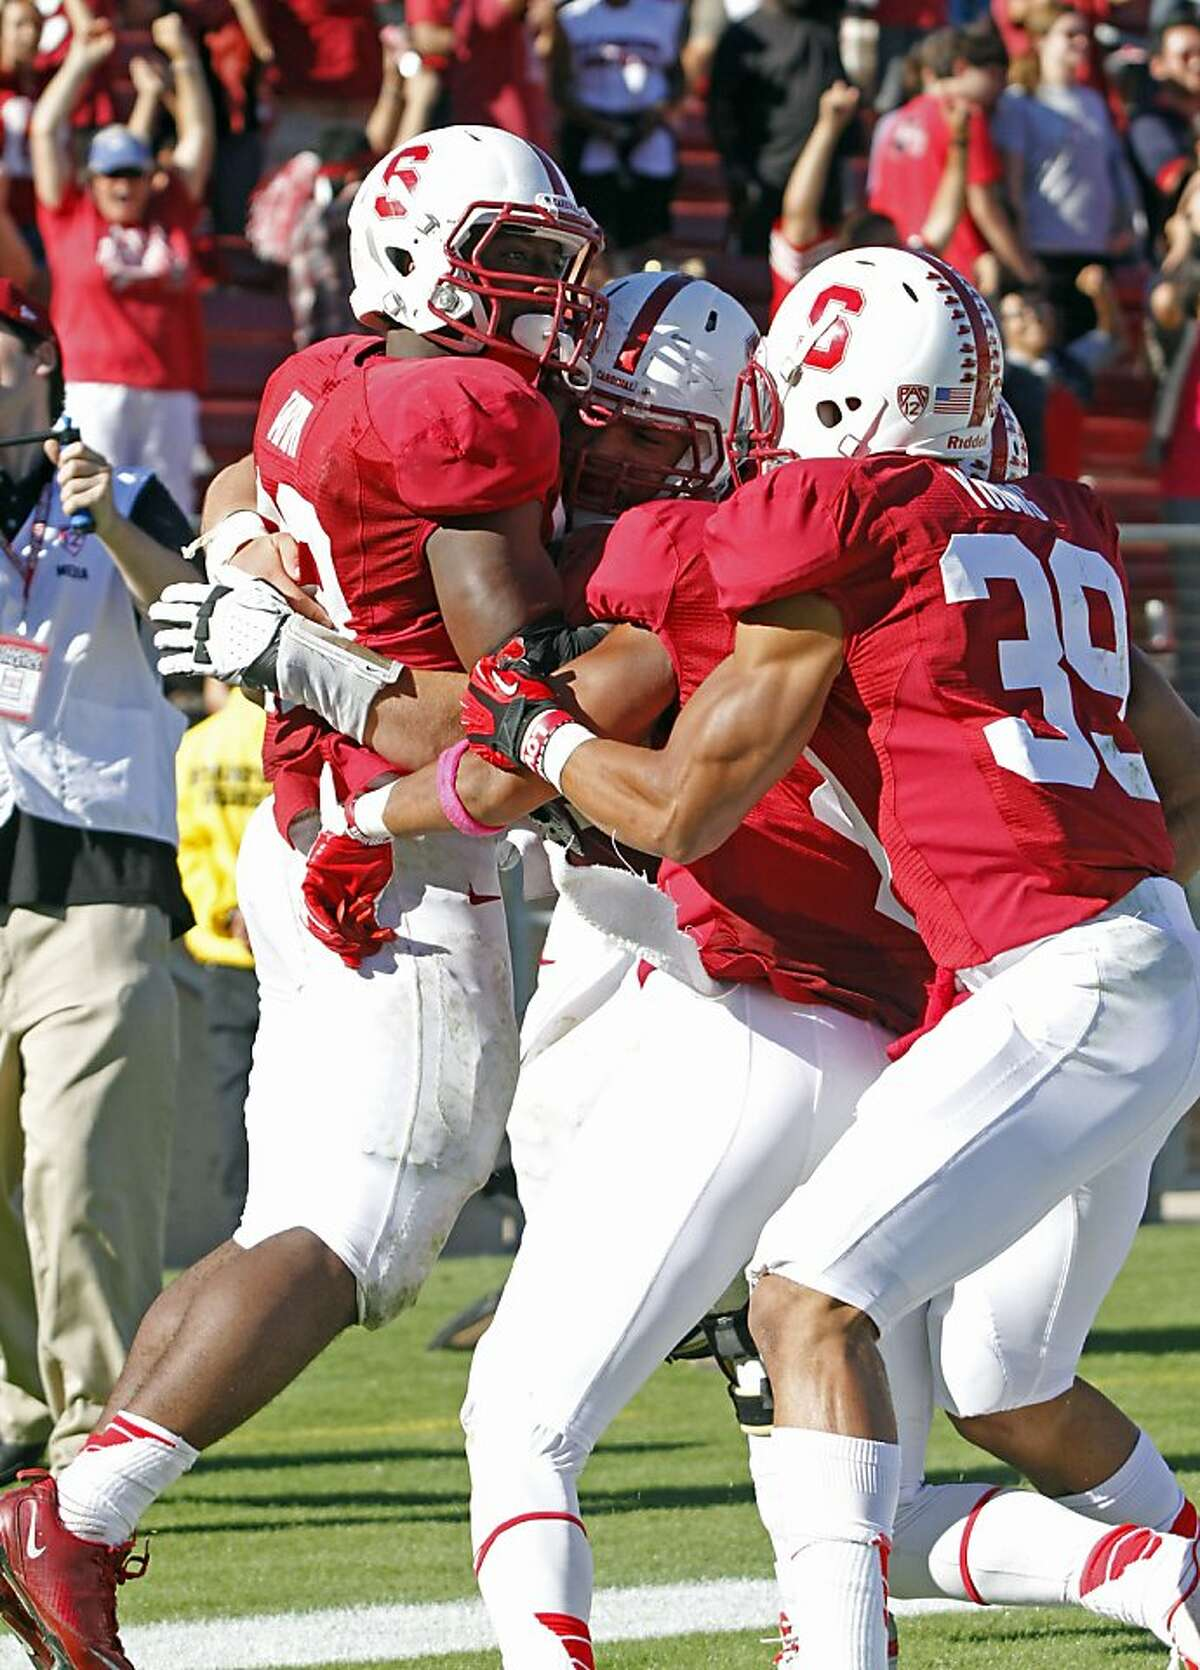 Stanford's Stepfan Taylor, left, celebrates with teammates after scoring the game-winning touchdown in overtime against Arizona during an NCAA college football game in Stanford, Calif., Saturday, Oct. 6, 2012. Stanford beat Arizona 54-48. (AP Photo/George Nikitin)